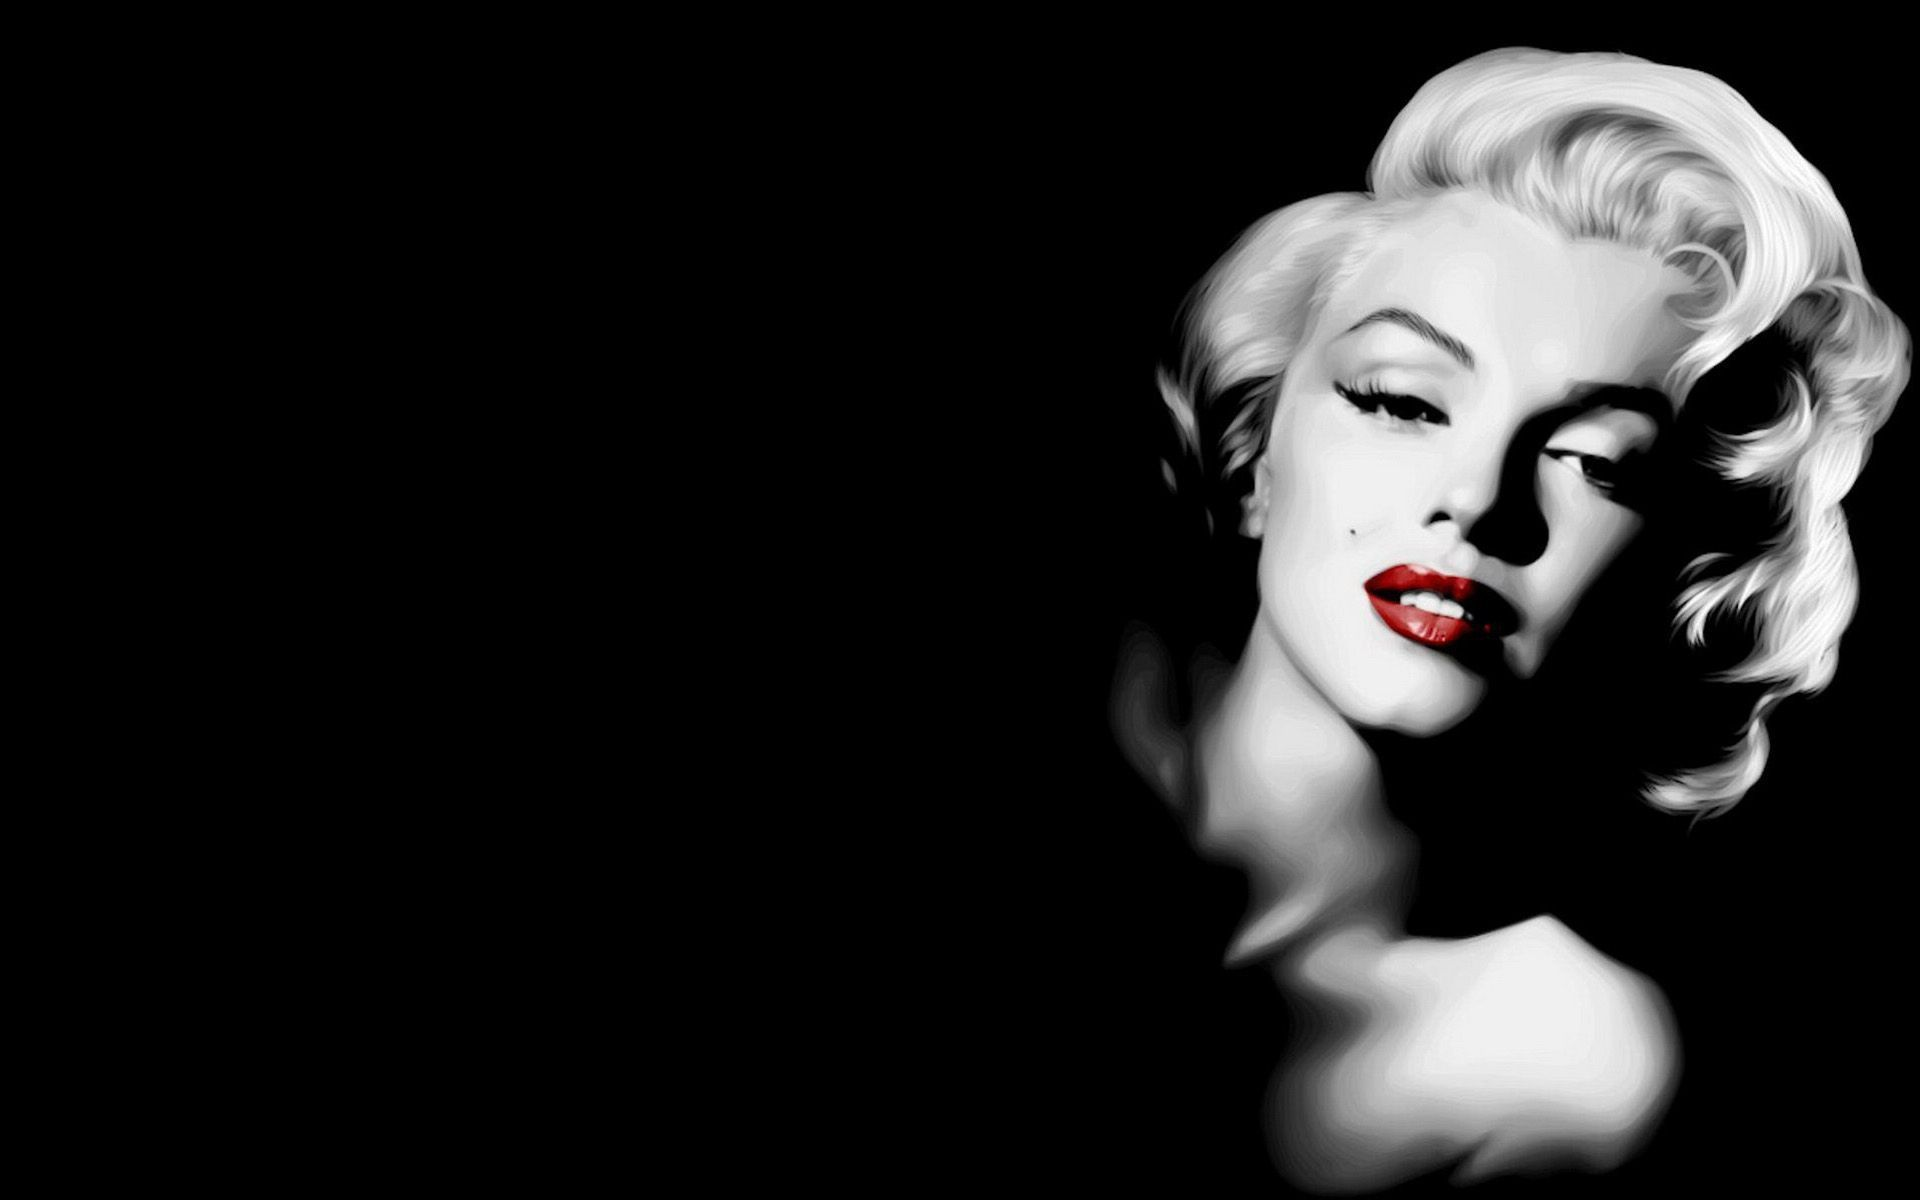 Pc Marilyn Monroe Wallpapers Dervla Grogan